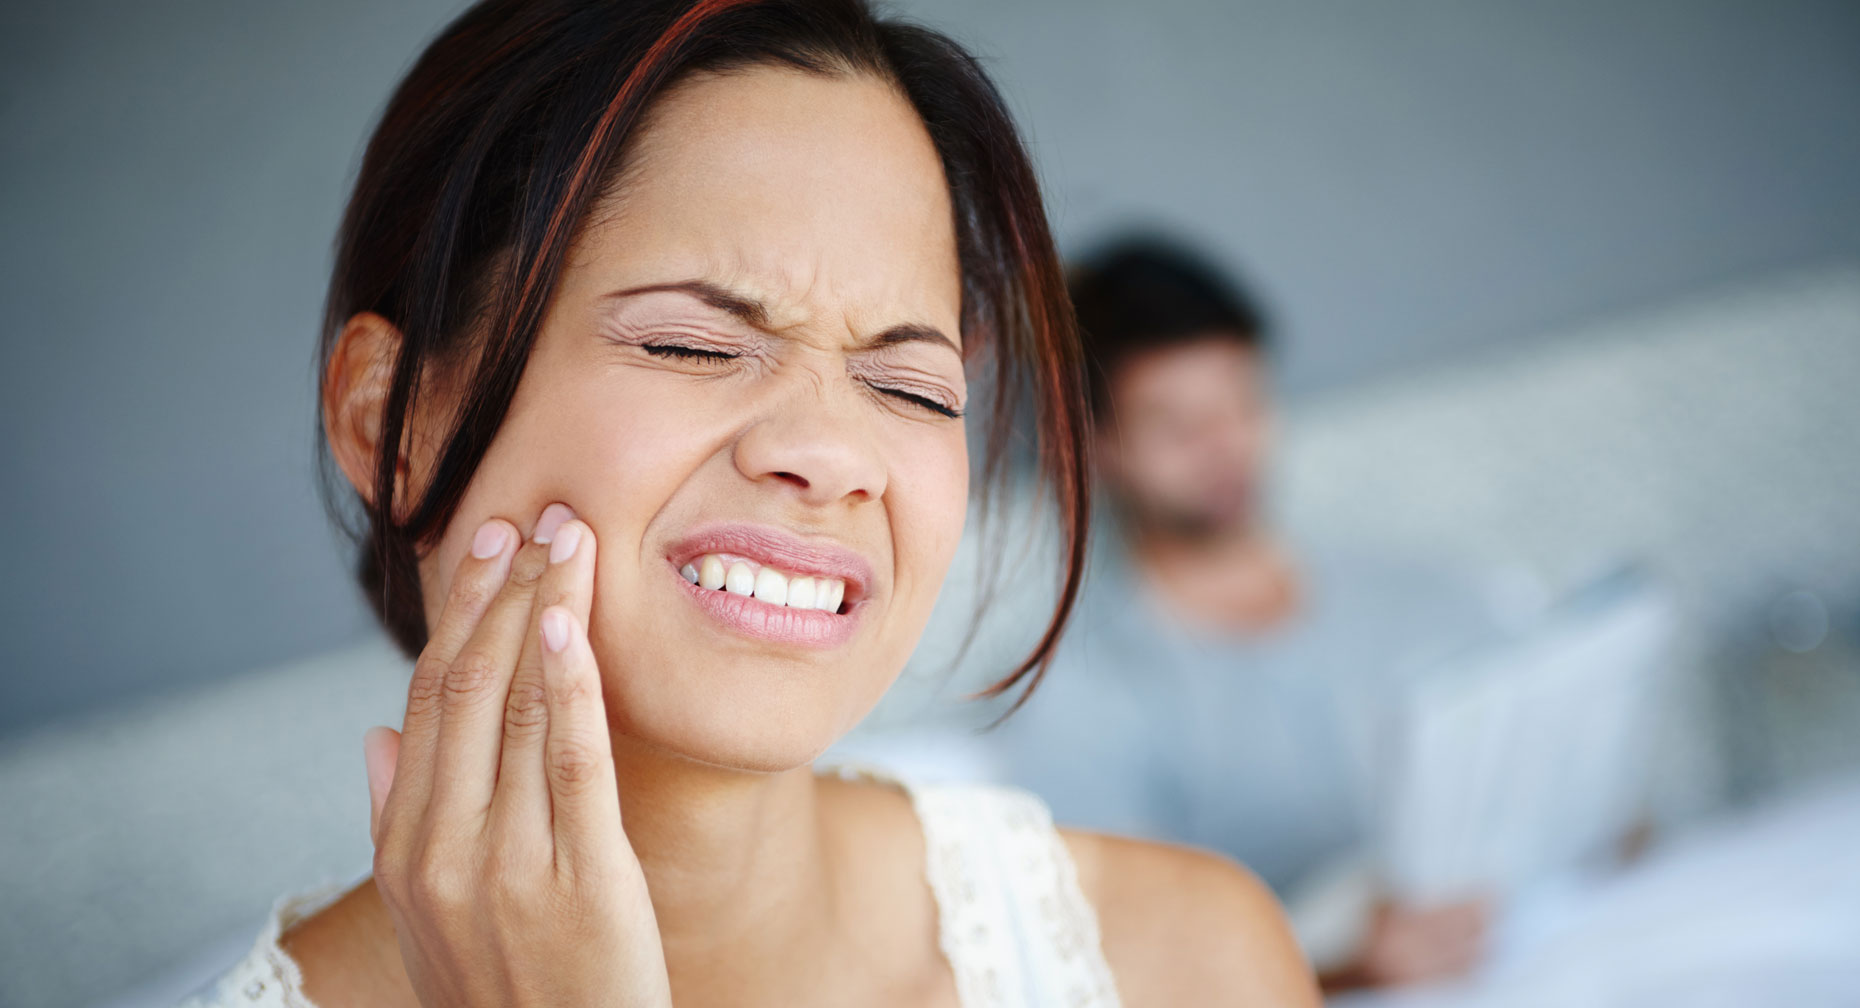 Jaw pain chiropractic treatment winnipeg